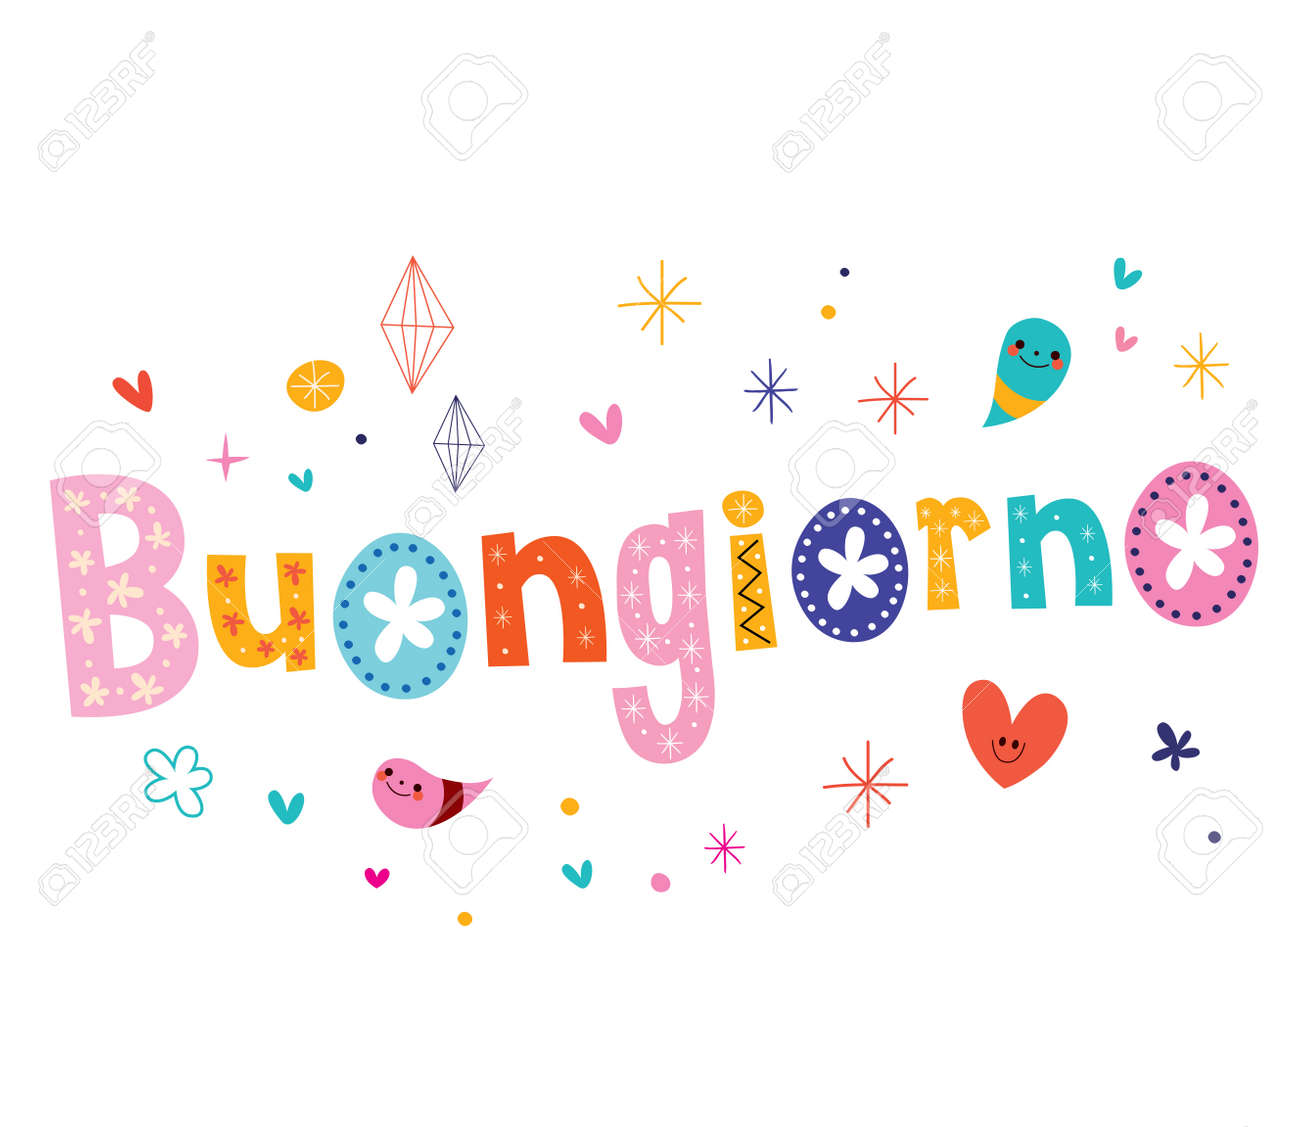 Buongiorno Italian Word Meaning Good Morning Good Day Hello